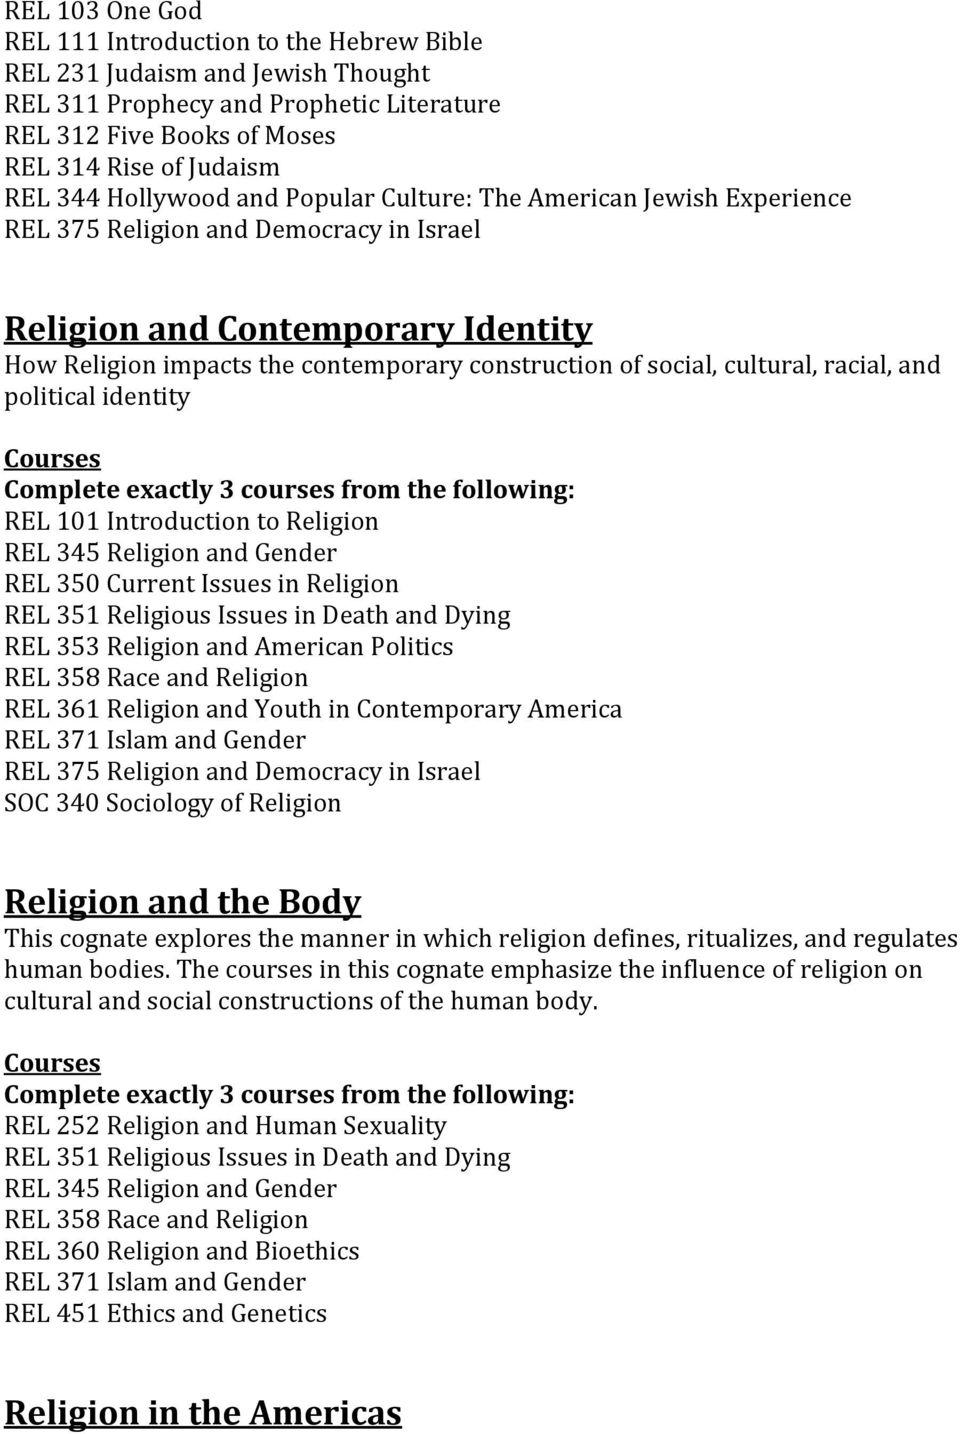 cultural, racial, and political identity REL 101 Introduction to Religion REL 345 Religion and Gender REL 358 Race and Religion REL 361 Religion and Youth in Contemporary America REL 371 Islam and